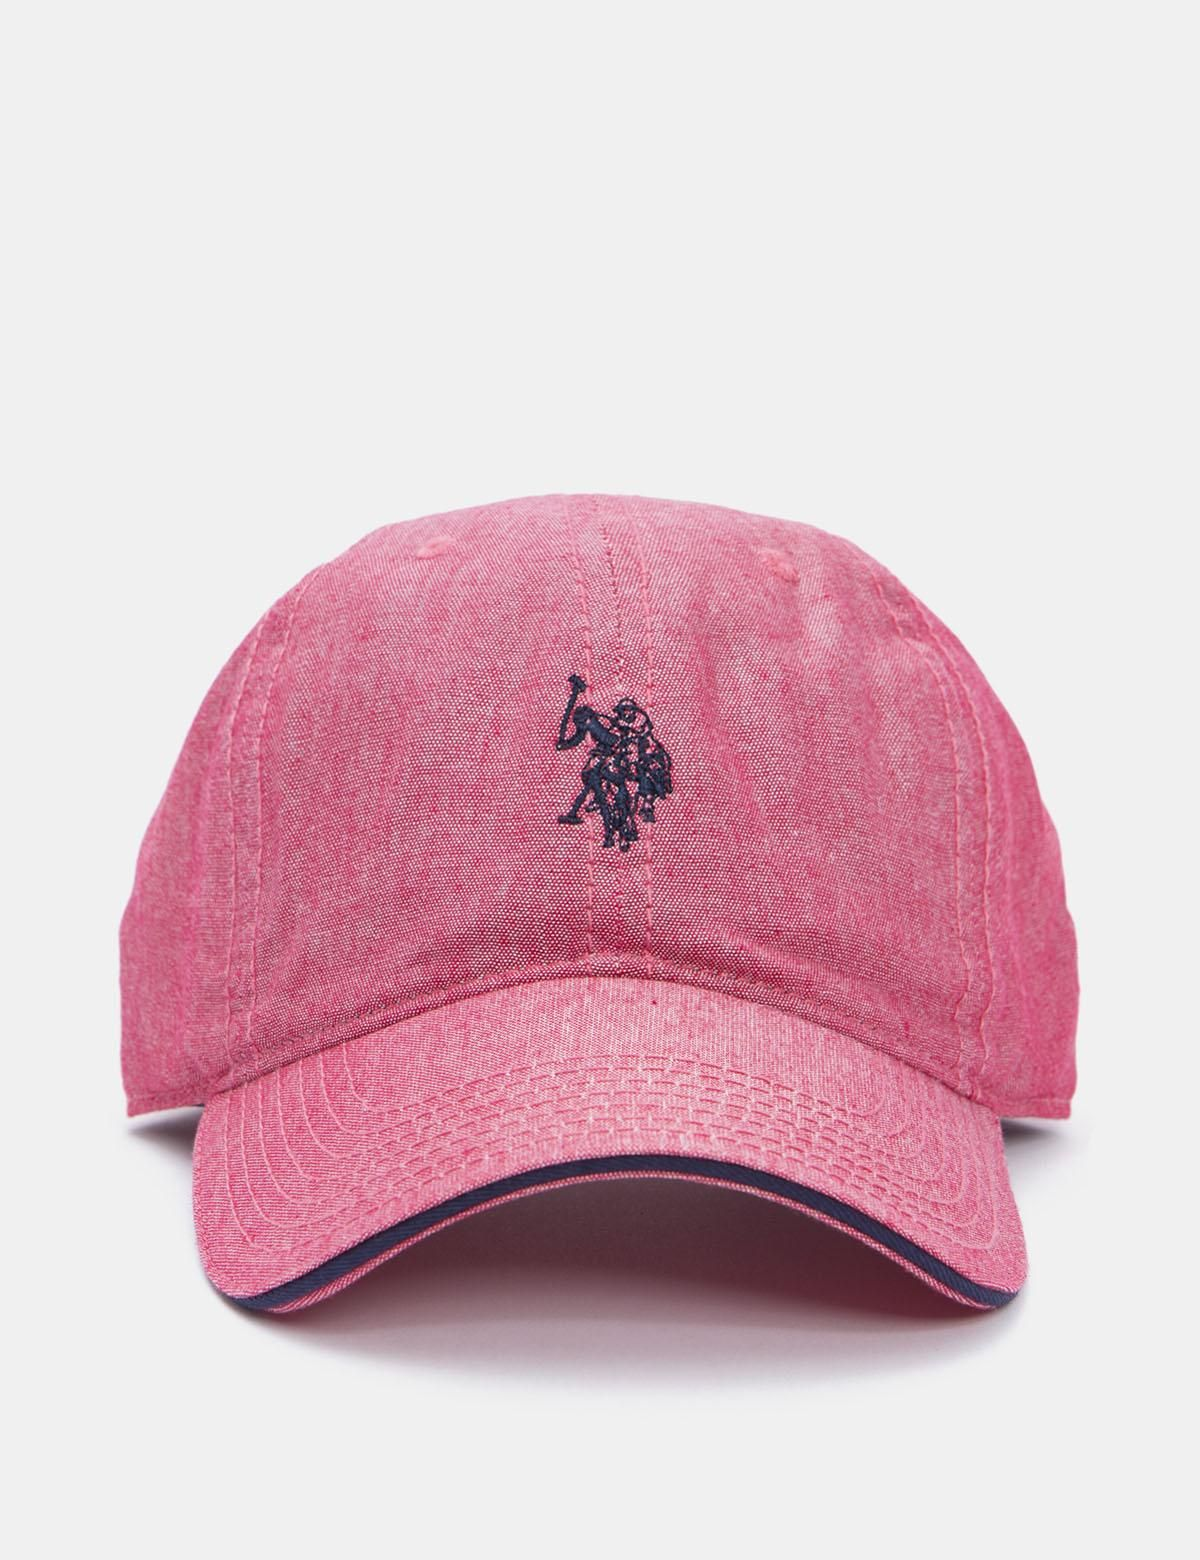 f91cb17b2389  mothersday  AdoreWe  US Polo Association Mens - US Polo Association U.S.  Polo Assn. Lightweight Baseball Hat Red - AdoreWe.com